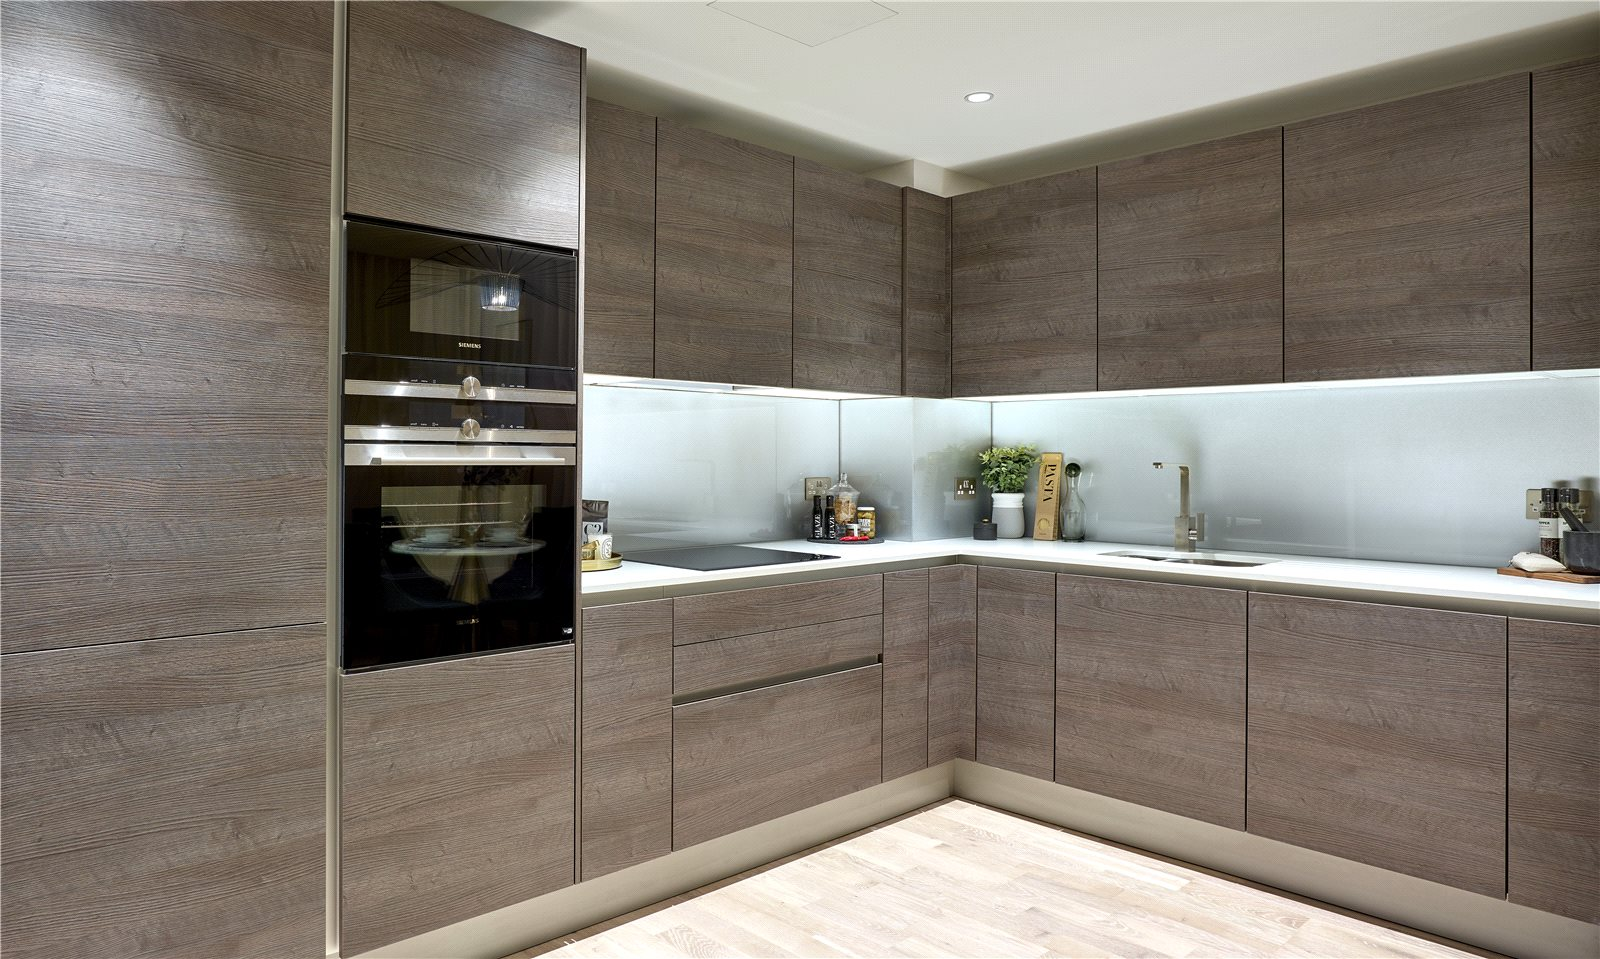 Onyx Apartments,Taylor Wimpey,Siemens,Kitchen